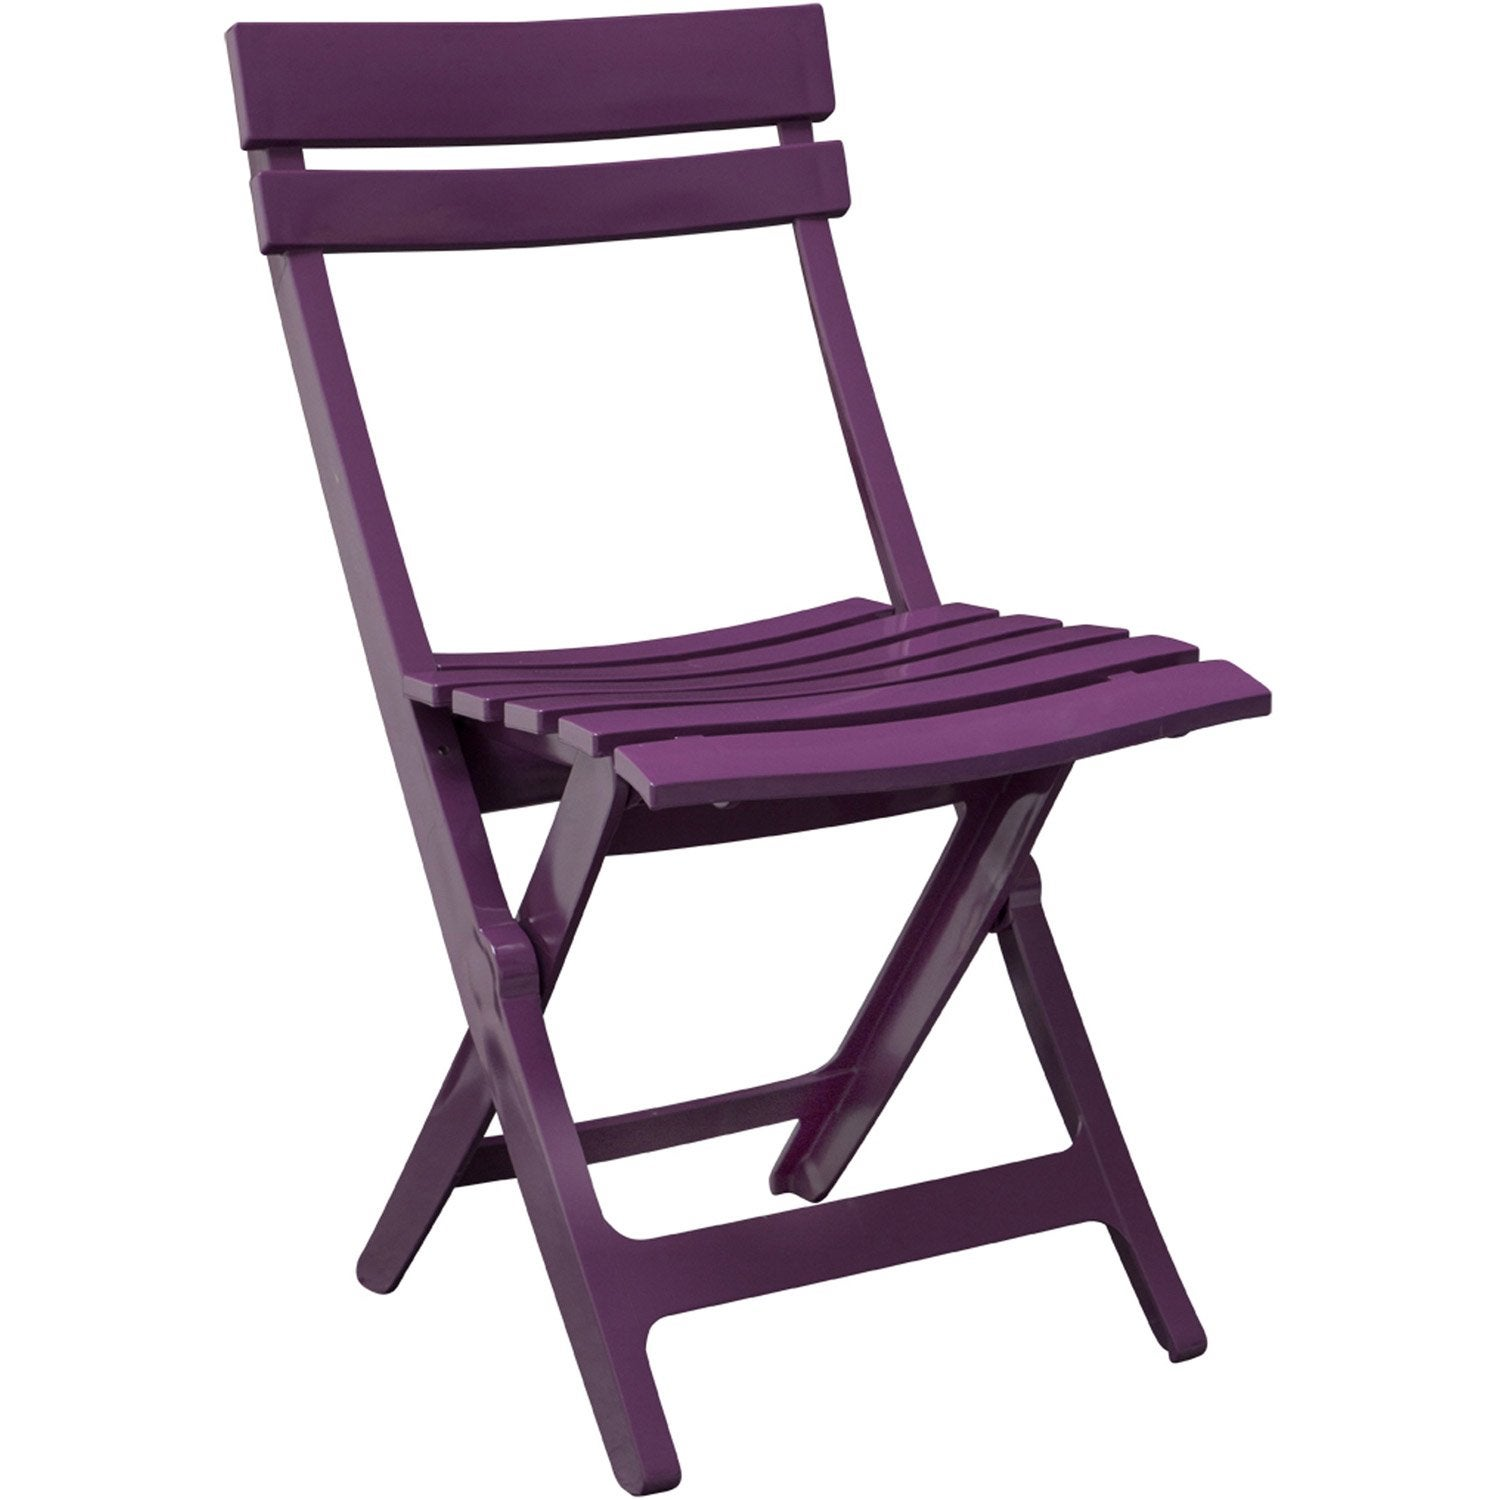 chaise de jardin en r sine miami violet leroy merlin. Black Bedroom Furniture Sets. Home Design Ideas